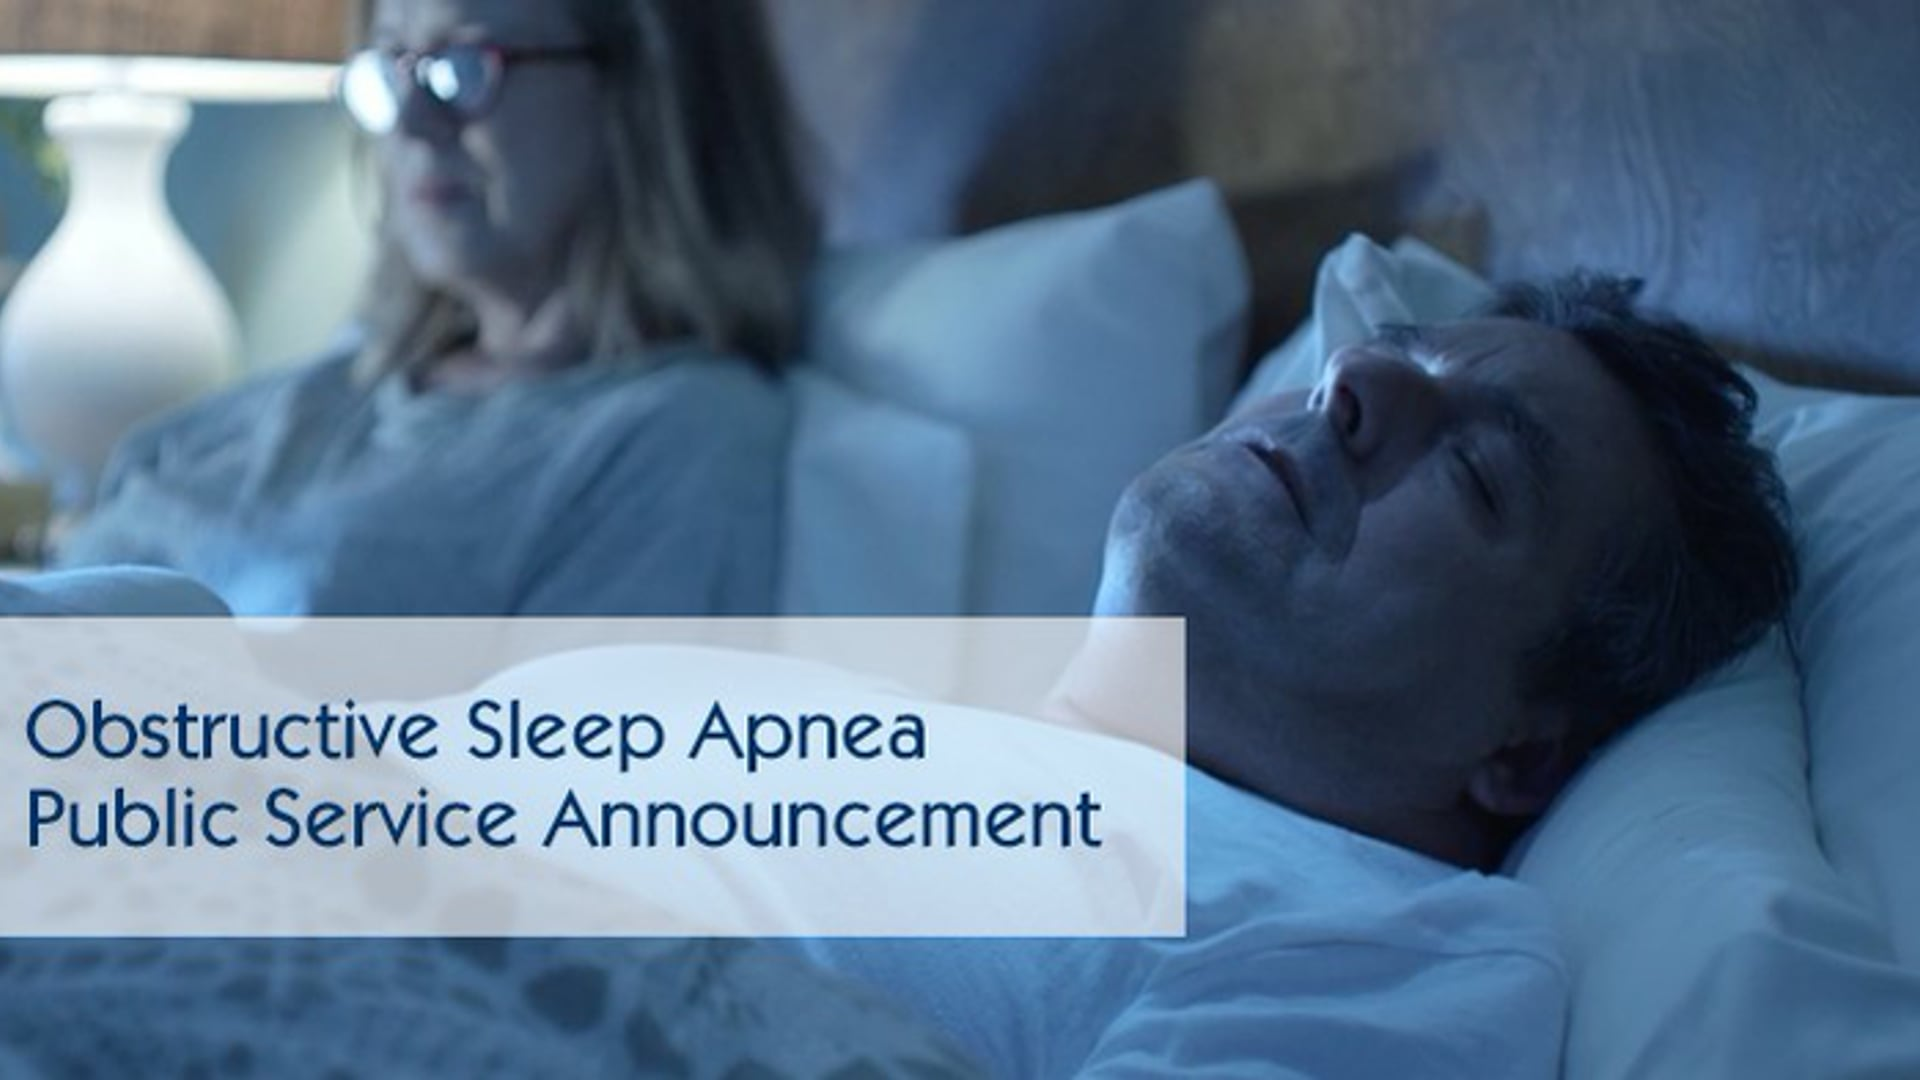 Obstructive Sleep Apnea is a serious and life-threatening condition